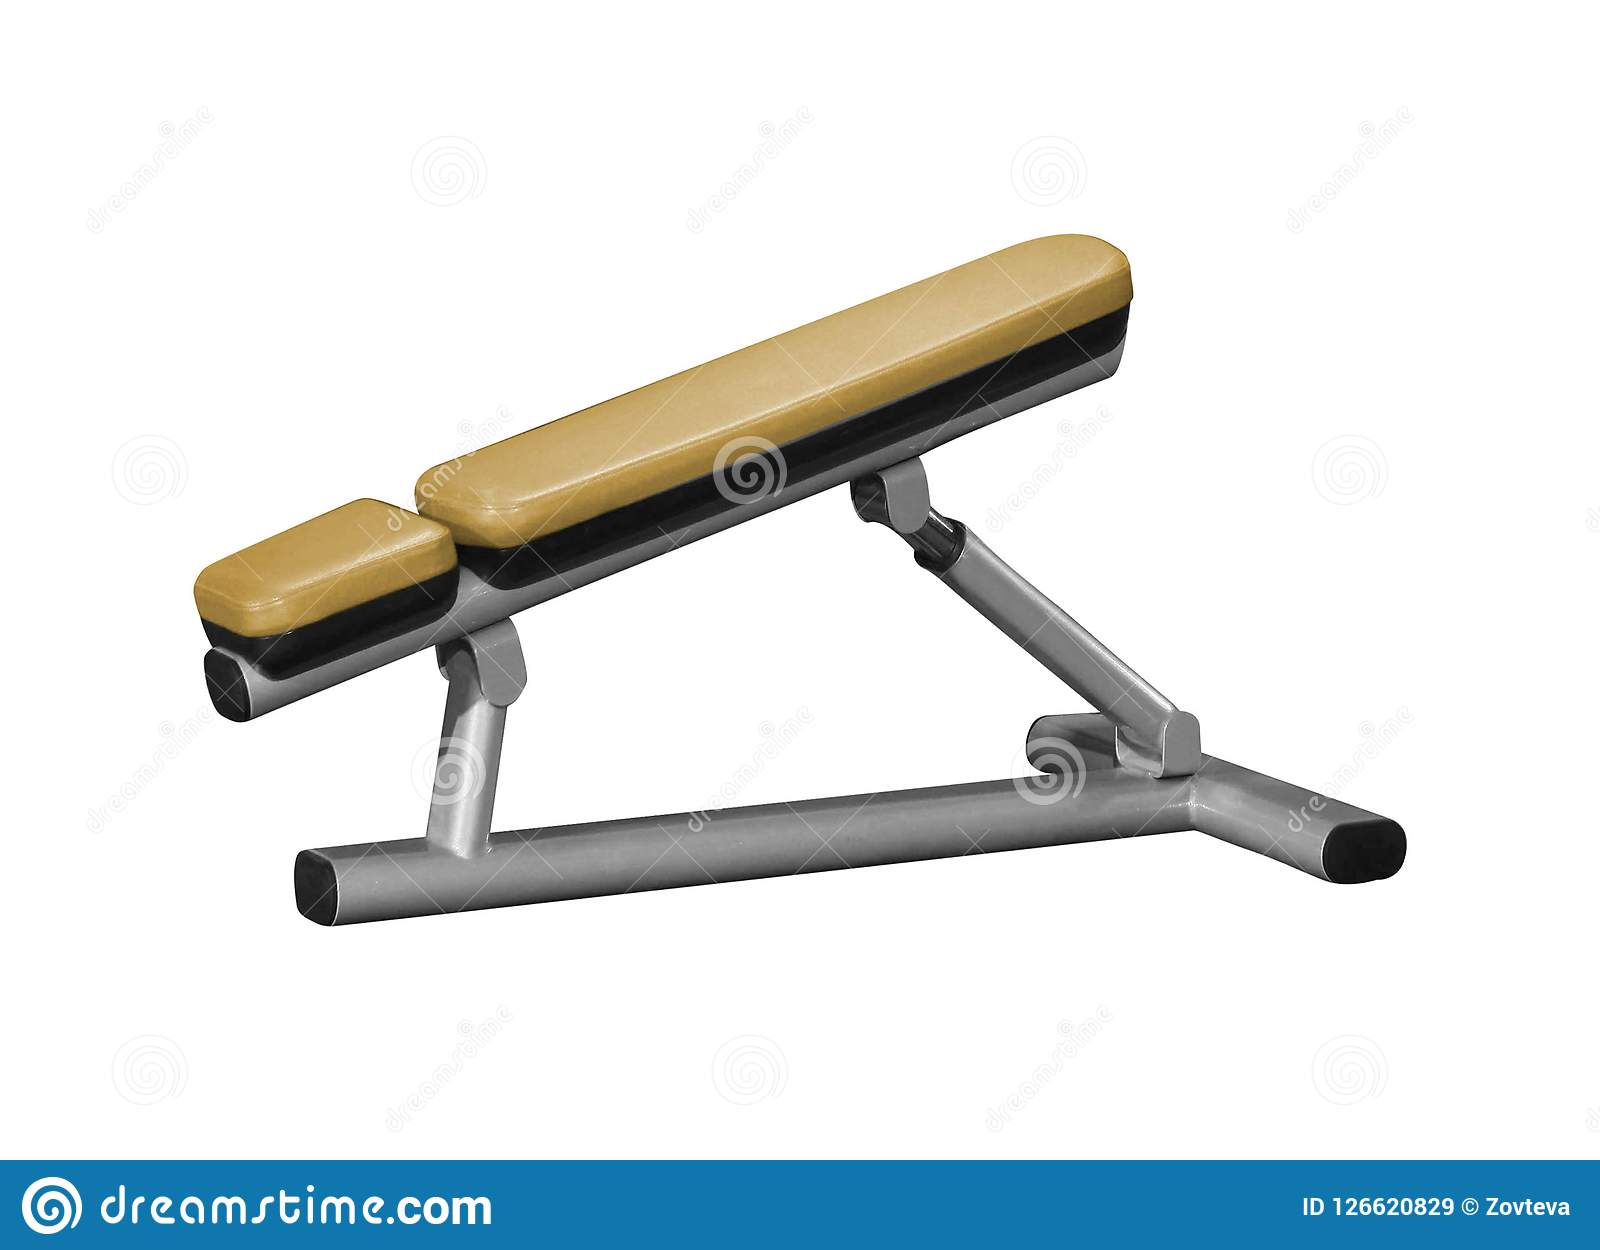 Incredible Exercise Weight Bench Stock Image Image Of Bench Isolated Pdpeps Interior Chair Design Pdpepsorg